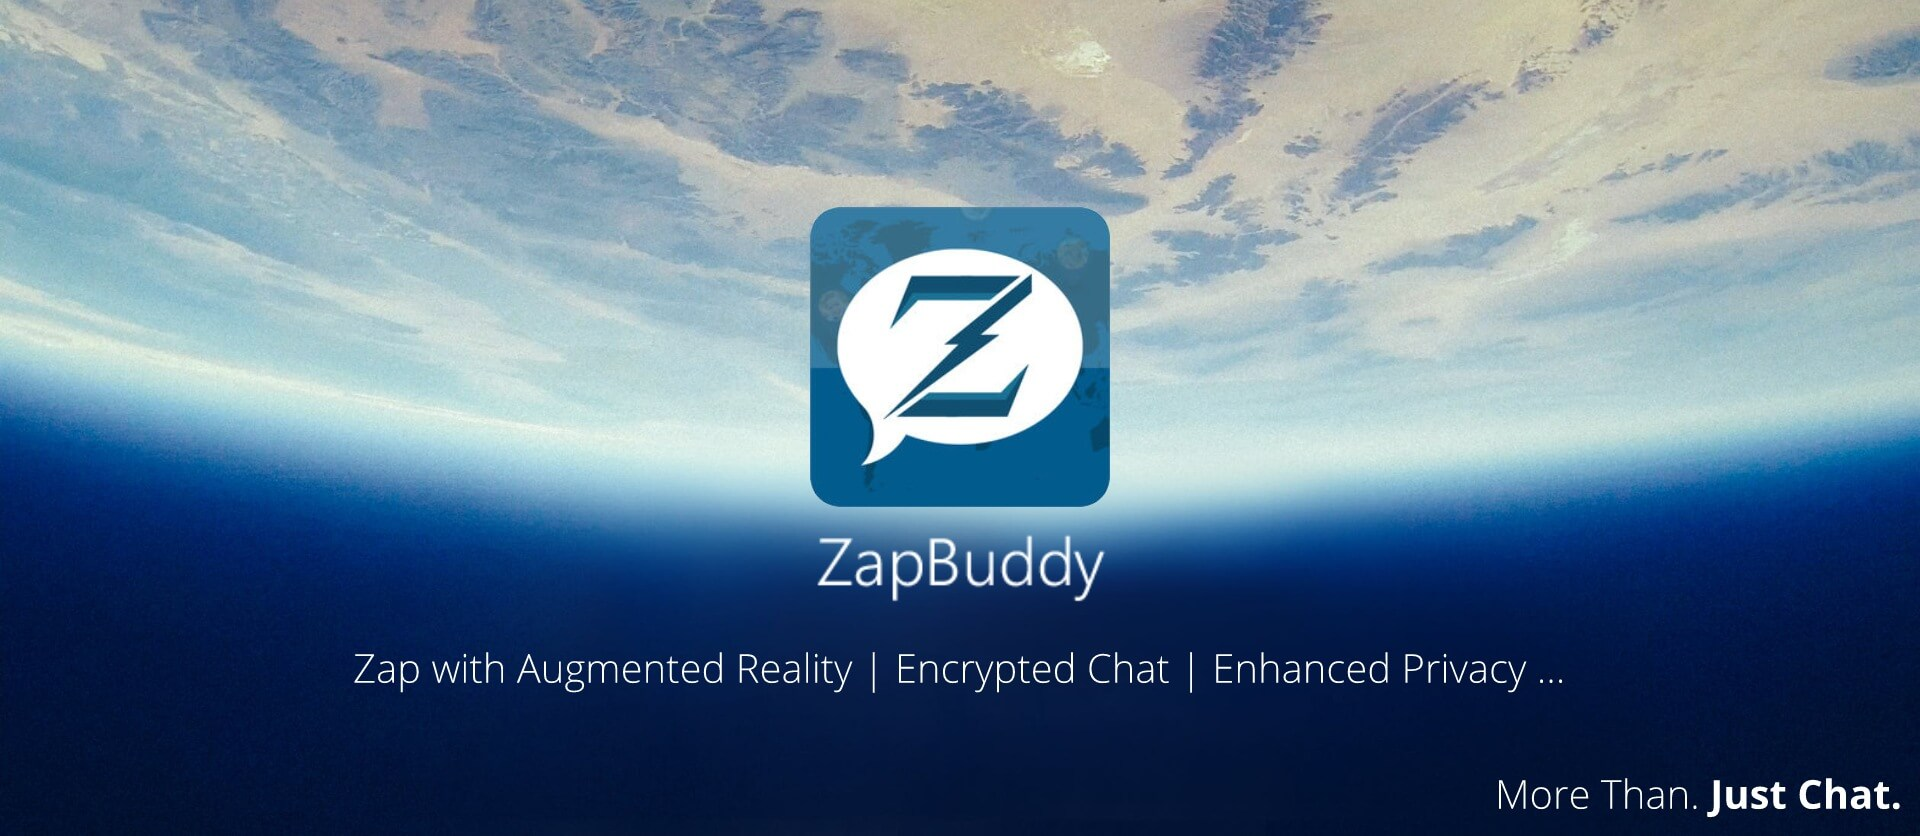 ZapBuddy: The Pakistani Alternative To WhatsApp